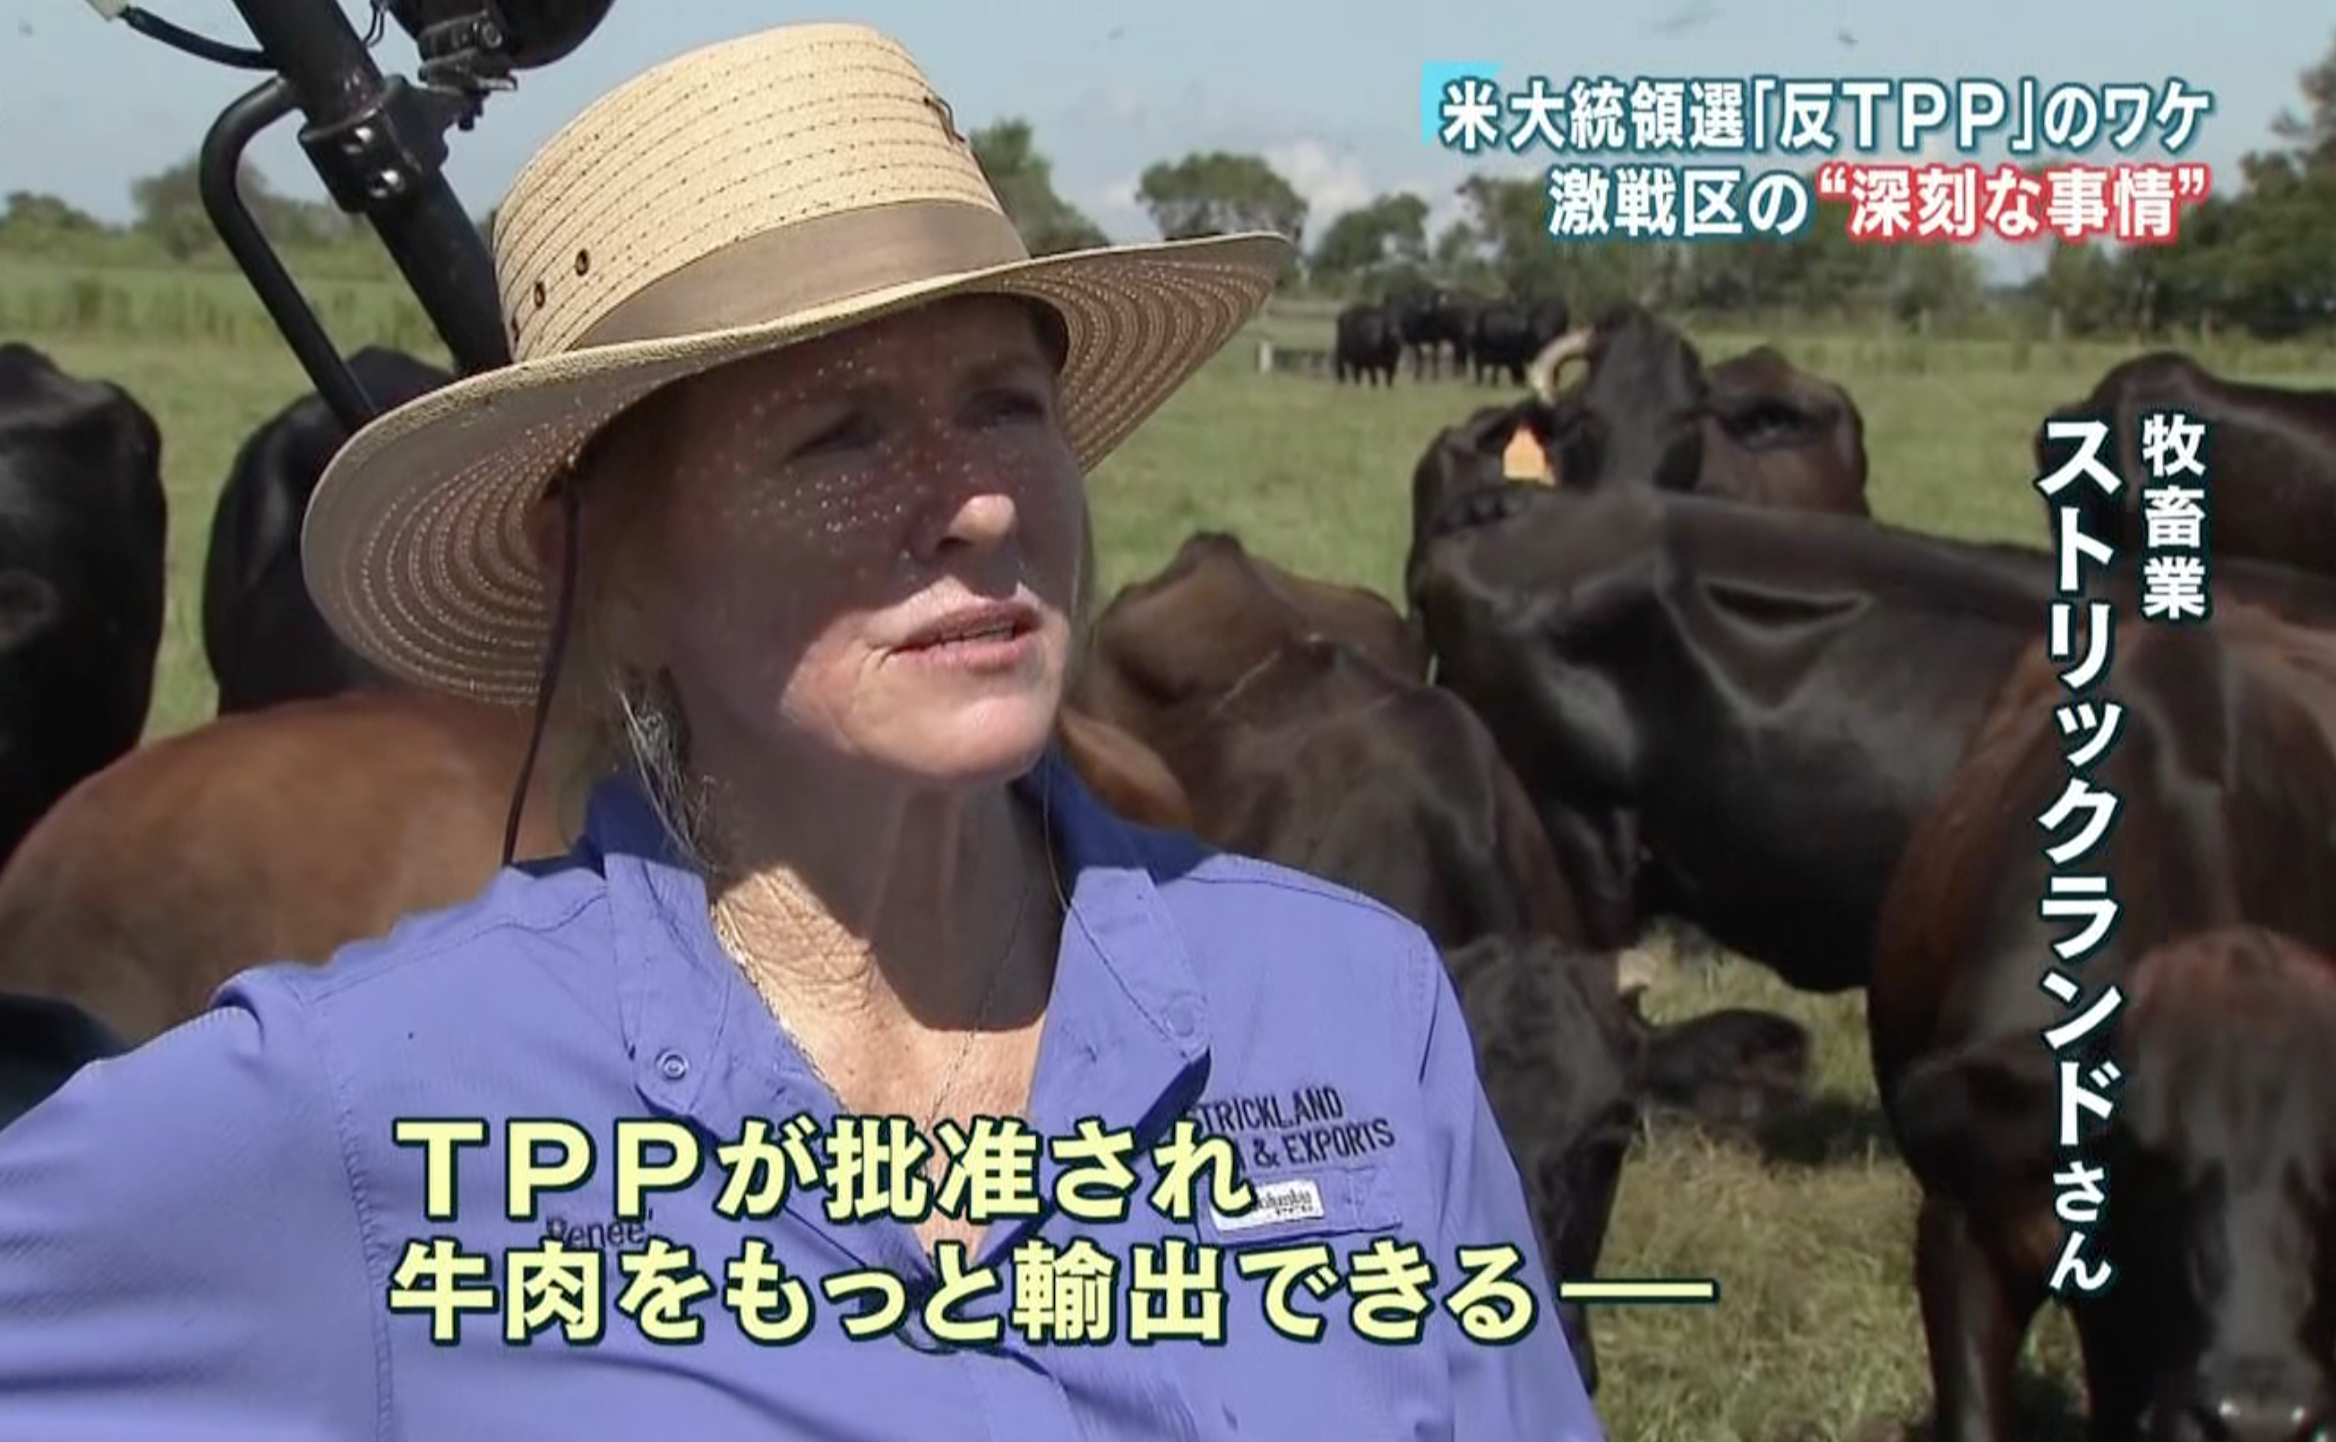 Reneé Strickland Weighs In On TPP And Its Role In The 2016 Election On Japanese News Program